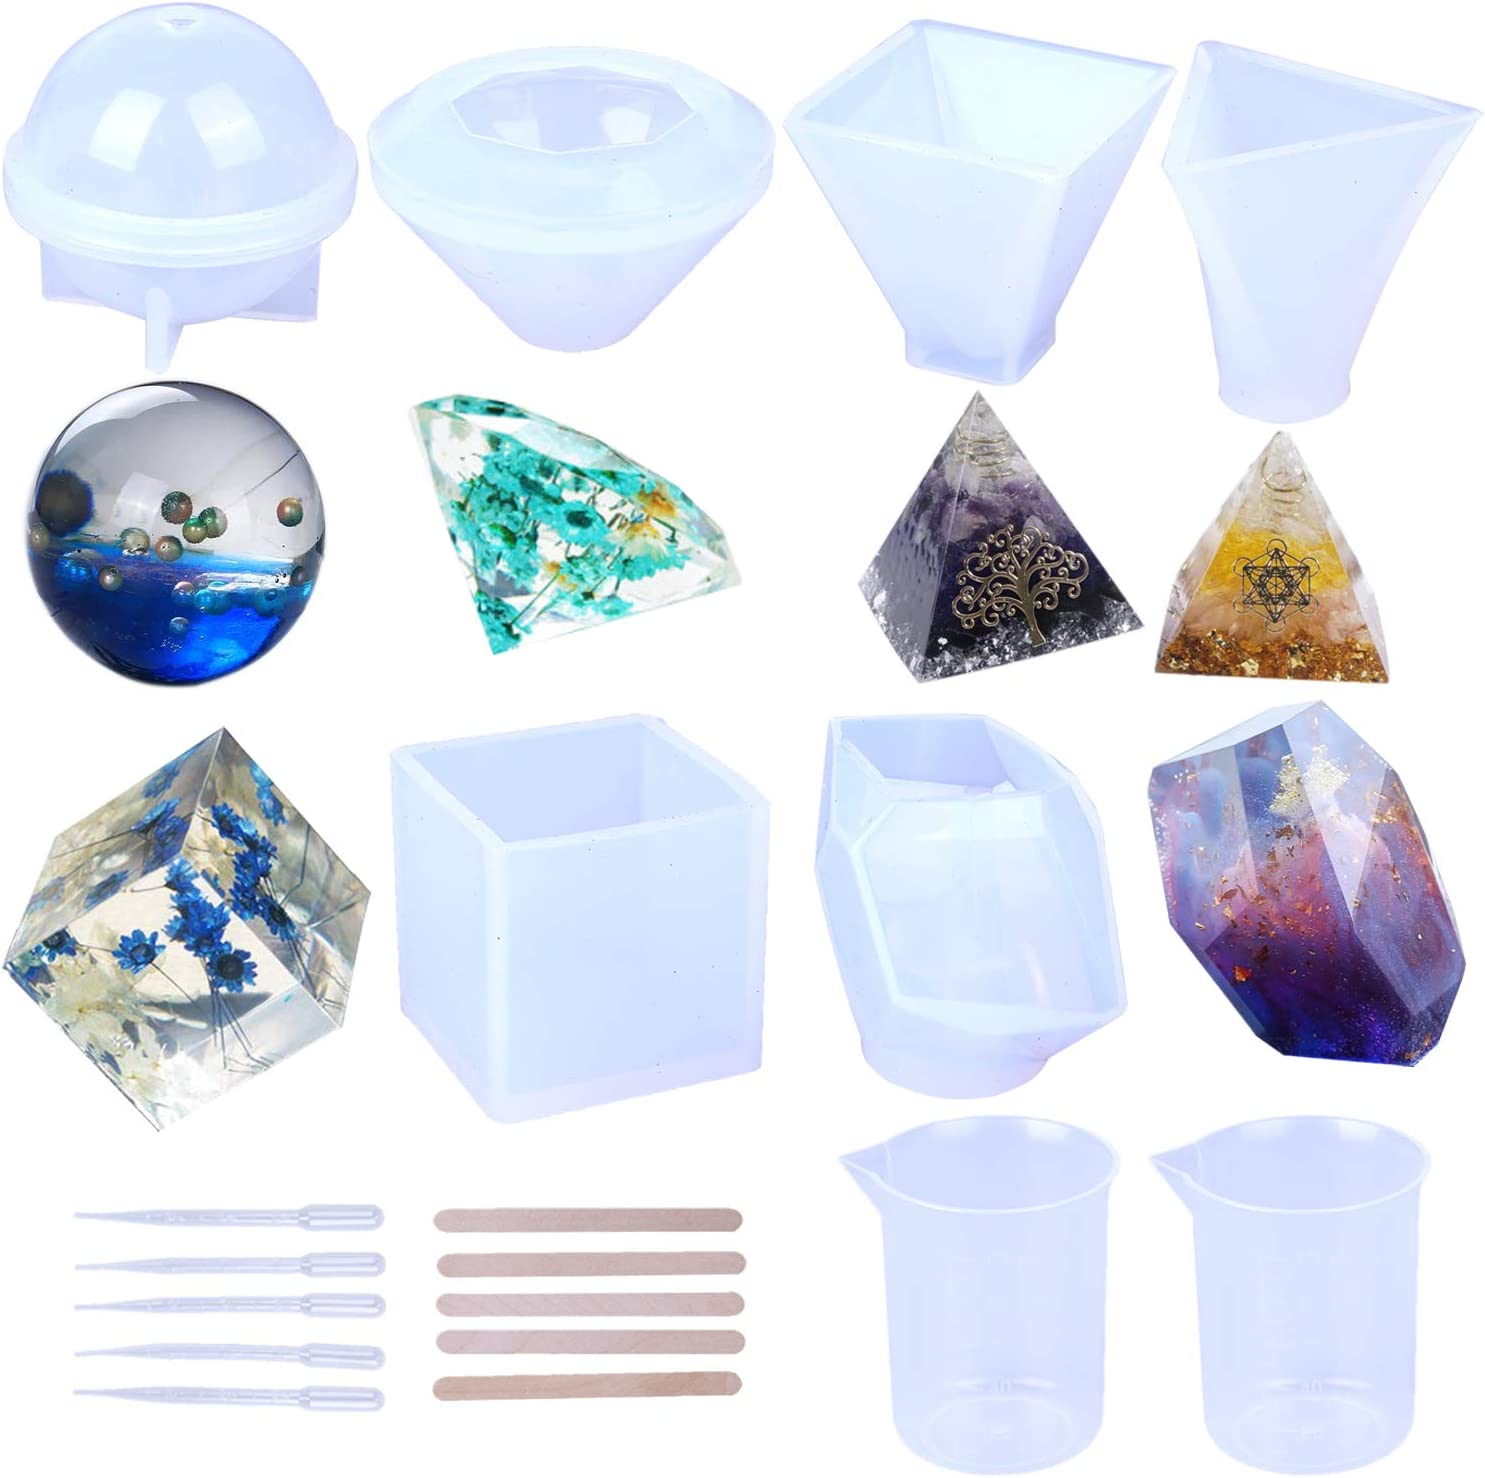 DJ/_M/_199 95x95mm Pyramid Shape Silicone Mold Resin Silicone Mould Jewelry Making Epoxy Resin Molds Jewelry Earring Resin Mold